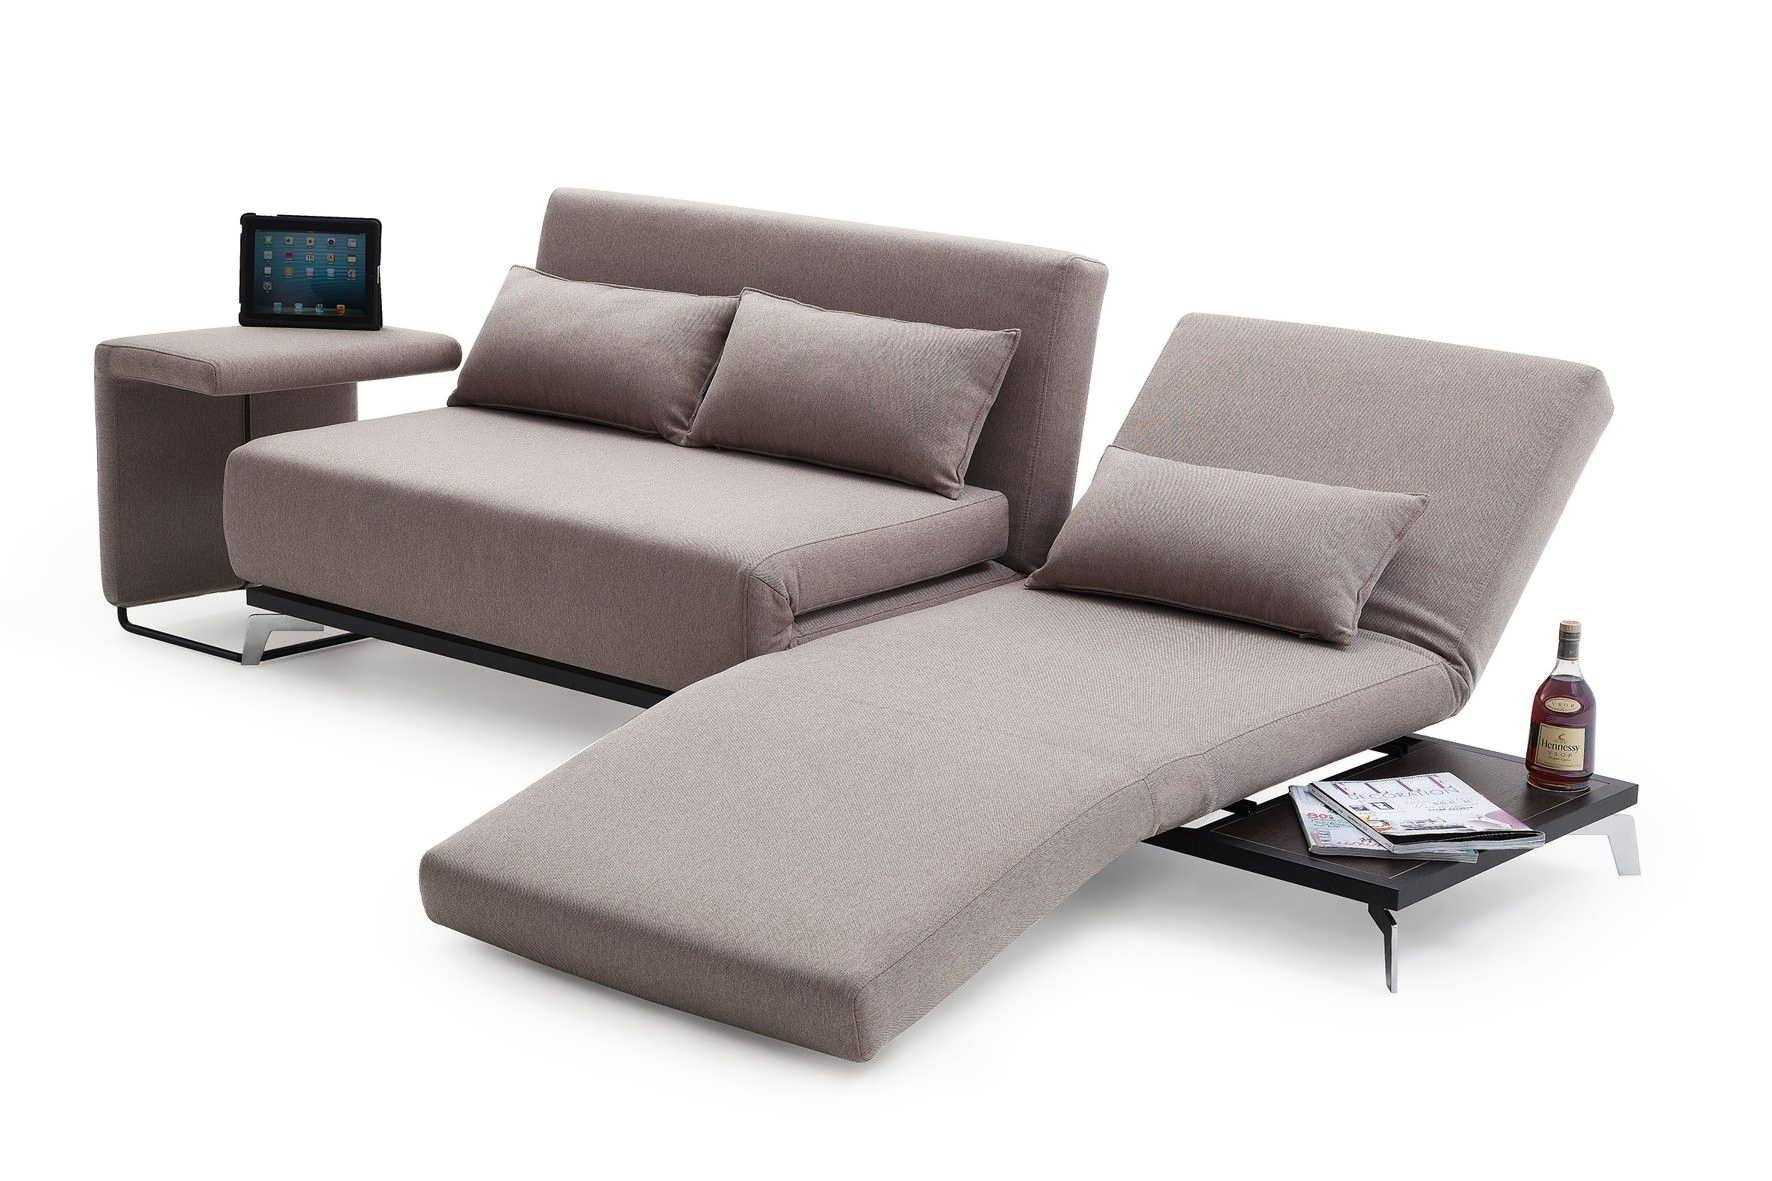 Effective Furniture Cool Sofa Bed Design For Your Living Room With Regarding Cool Sofa Beds (#9 of 12)